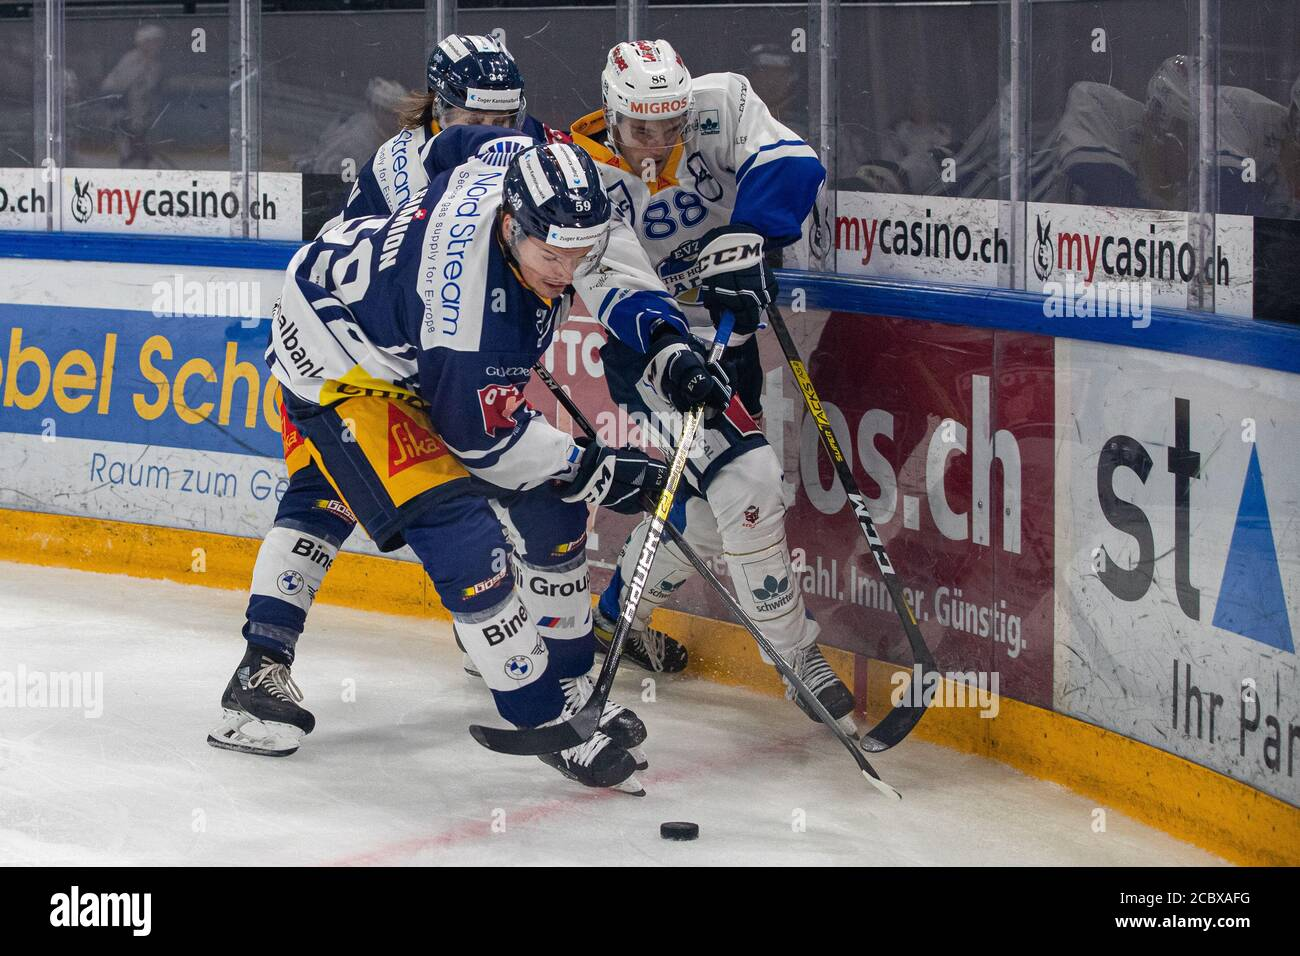 Anton Gradin # 88 (EVZ Academy) against Dario Simion # 59 (EV Zug) and Claudio Cadonau # 34 (EV Zug) during the National and Swiss League preparation ice hockey game between EV Zug and EVZ Academy on August 16, 2020 in Bossard Arena in Zug. Credit: SPP Sport Press Photo. /Alamy Live News Stock Photo